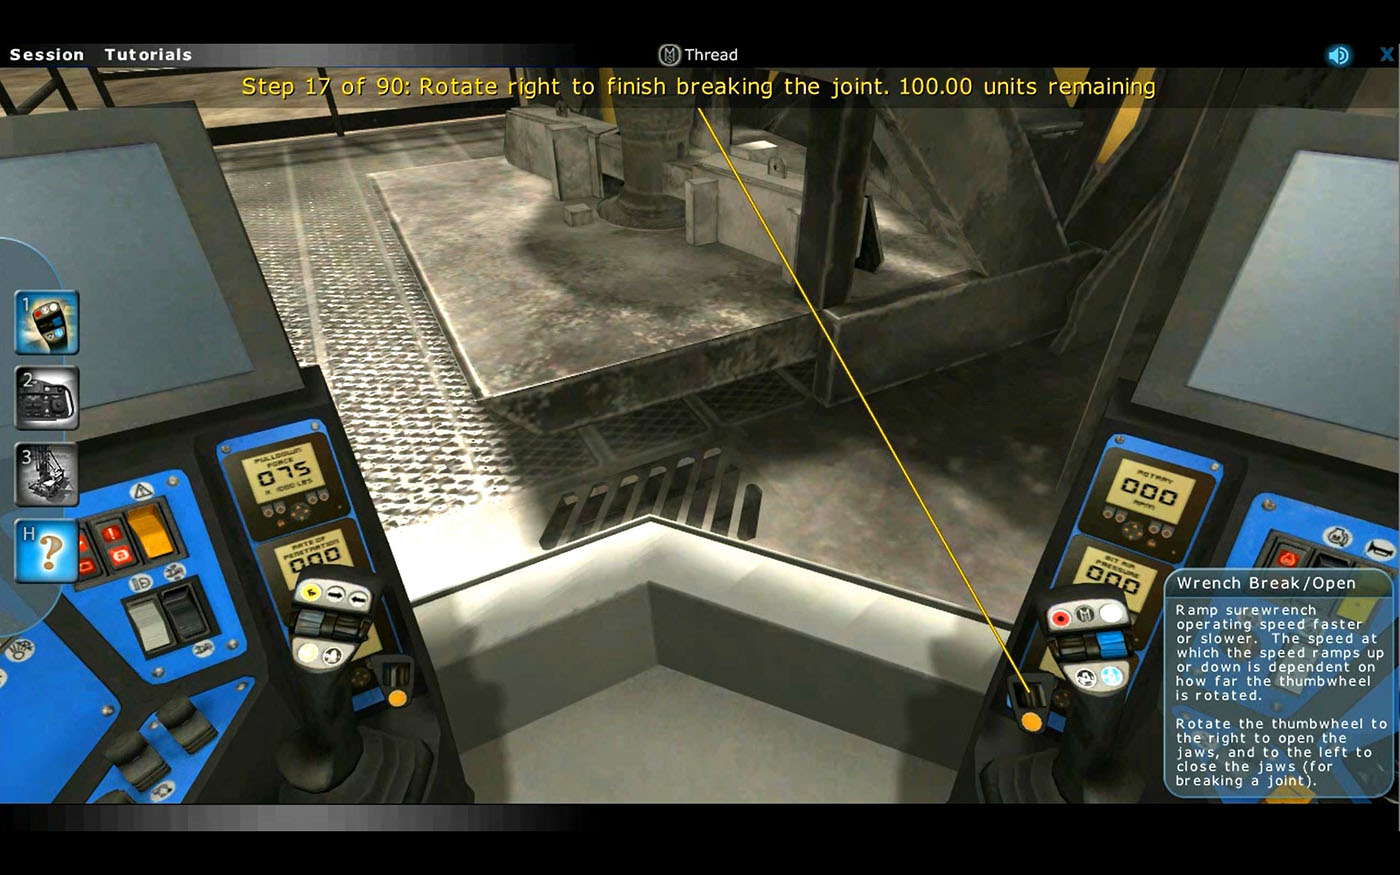 Komatsu Mining Equipment Controls Familiarization Training Simulator